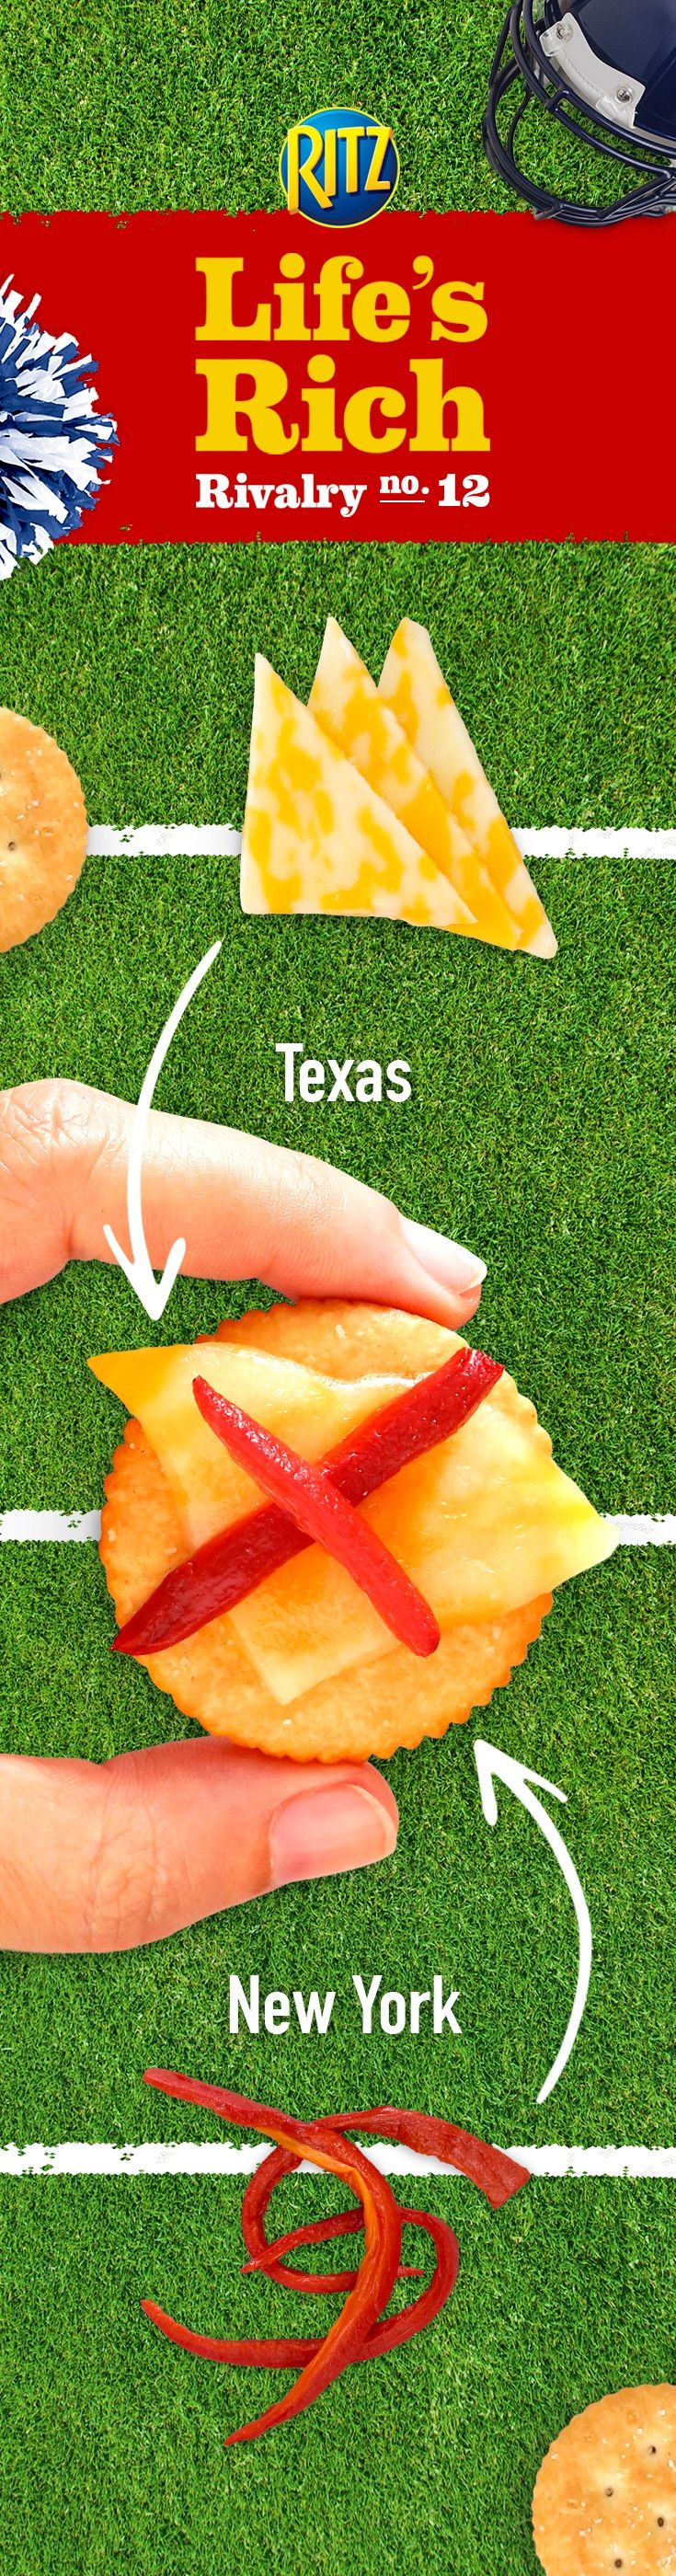 Your friends will forget who's in the Red Zone at your football game day party when they unite over Texas-favorite Colby Jack cheese combined with New York-loved red pepper in mouth-watering Cheesy Red Pepper RITZ! Bring the party together by following this easy recipe for winning taste: 1. Cut Colby Jack cheese diagonally in half and place on RITZ Crackers 2. Place on microwaveable plate and add the strips of roasted red peppers 3. Microwave until cheese is melted and serve warm.